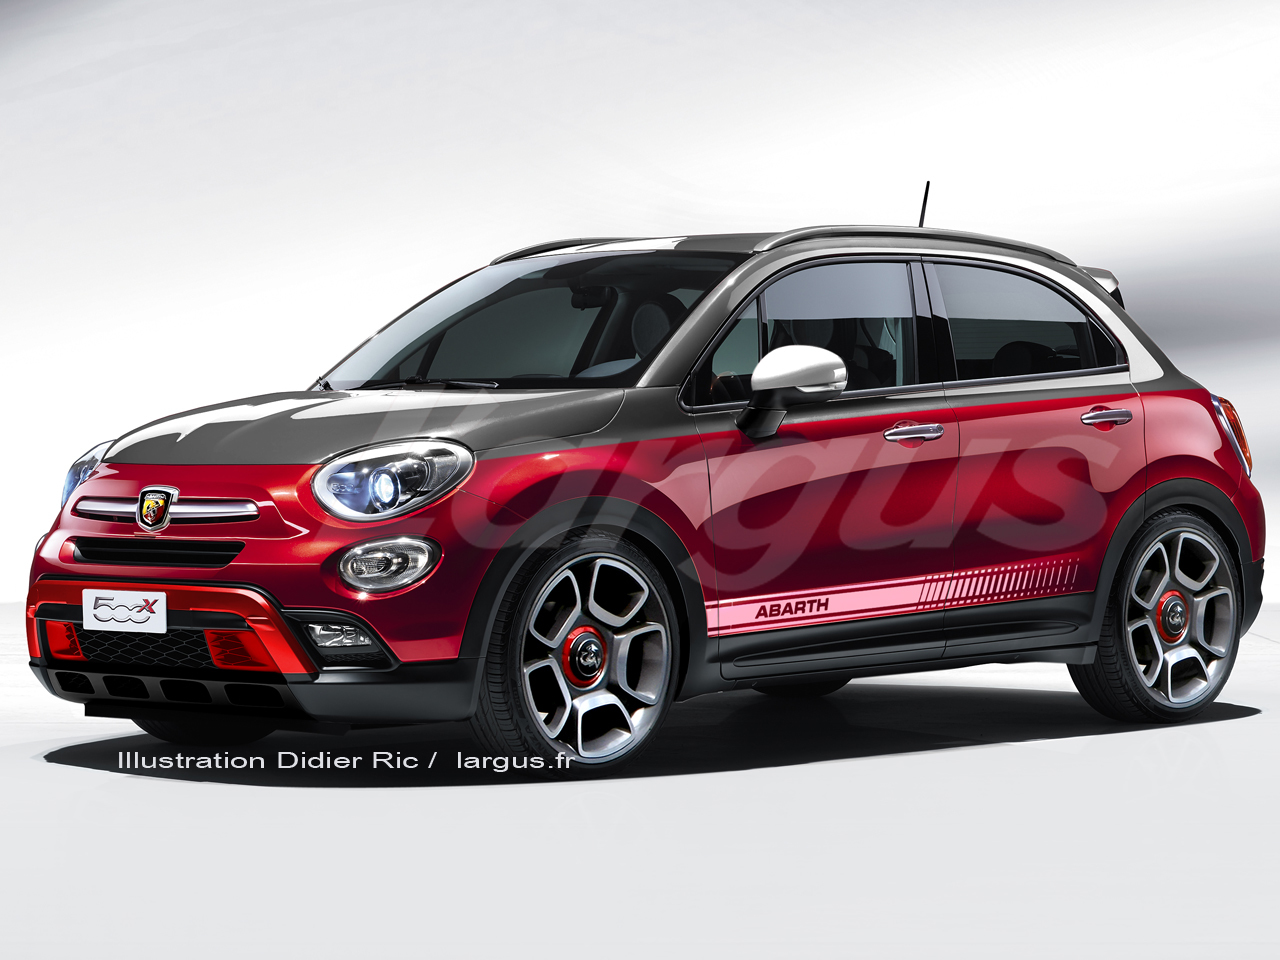 tous les nouveaux suv de 2016 abarth 500x pr sentation. Black Bedroom Furniture Sets. Home Design Ideas